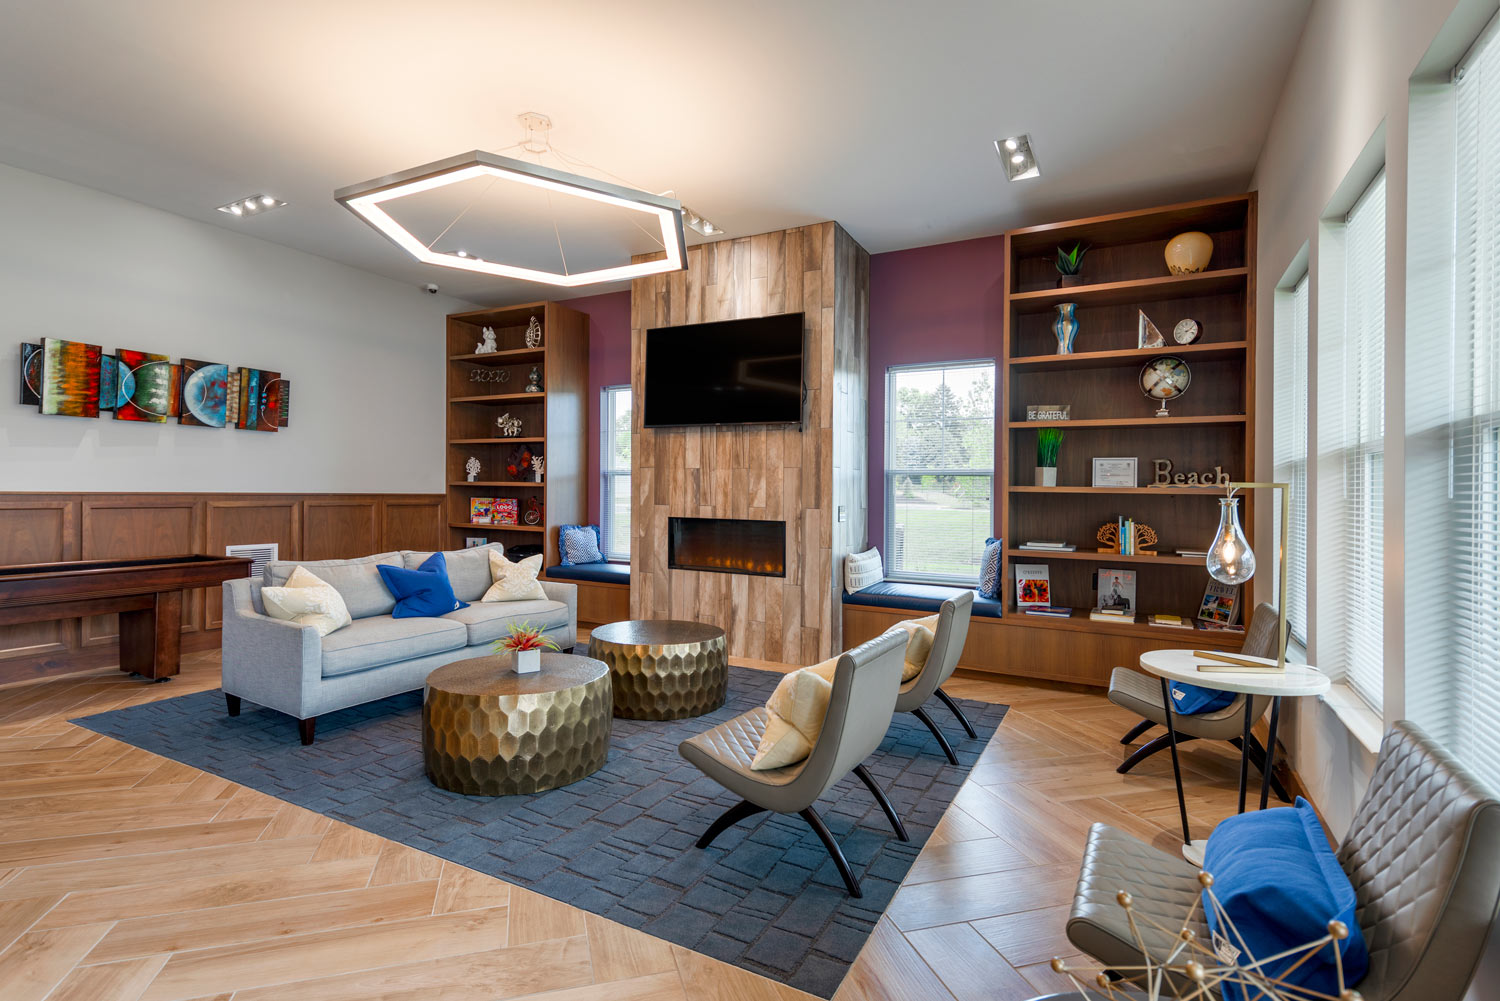 clubhouse lounge with sofa, chairs, bookshelves, fireplace and tv - luxury Christiana DE apartments